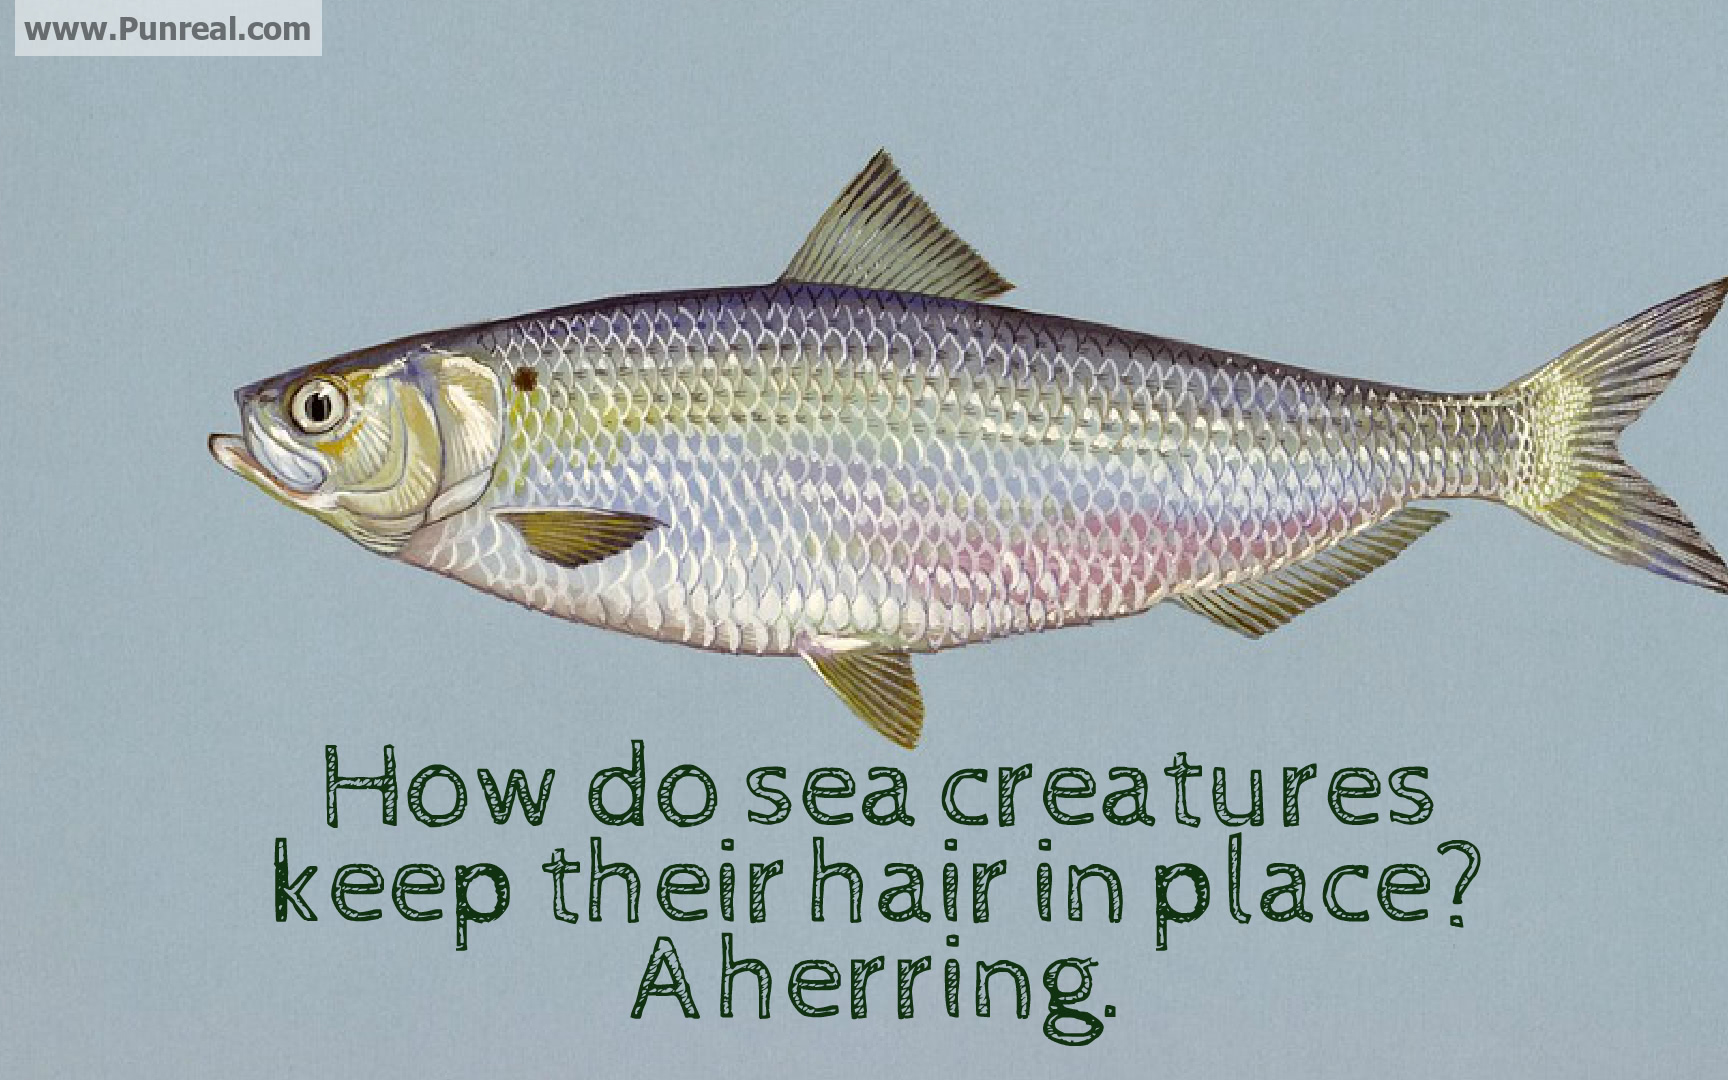 How do sea creatures keep their hair in place? A herring